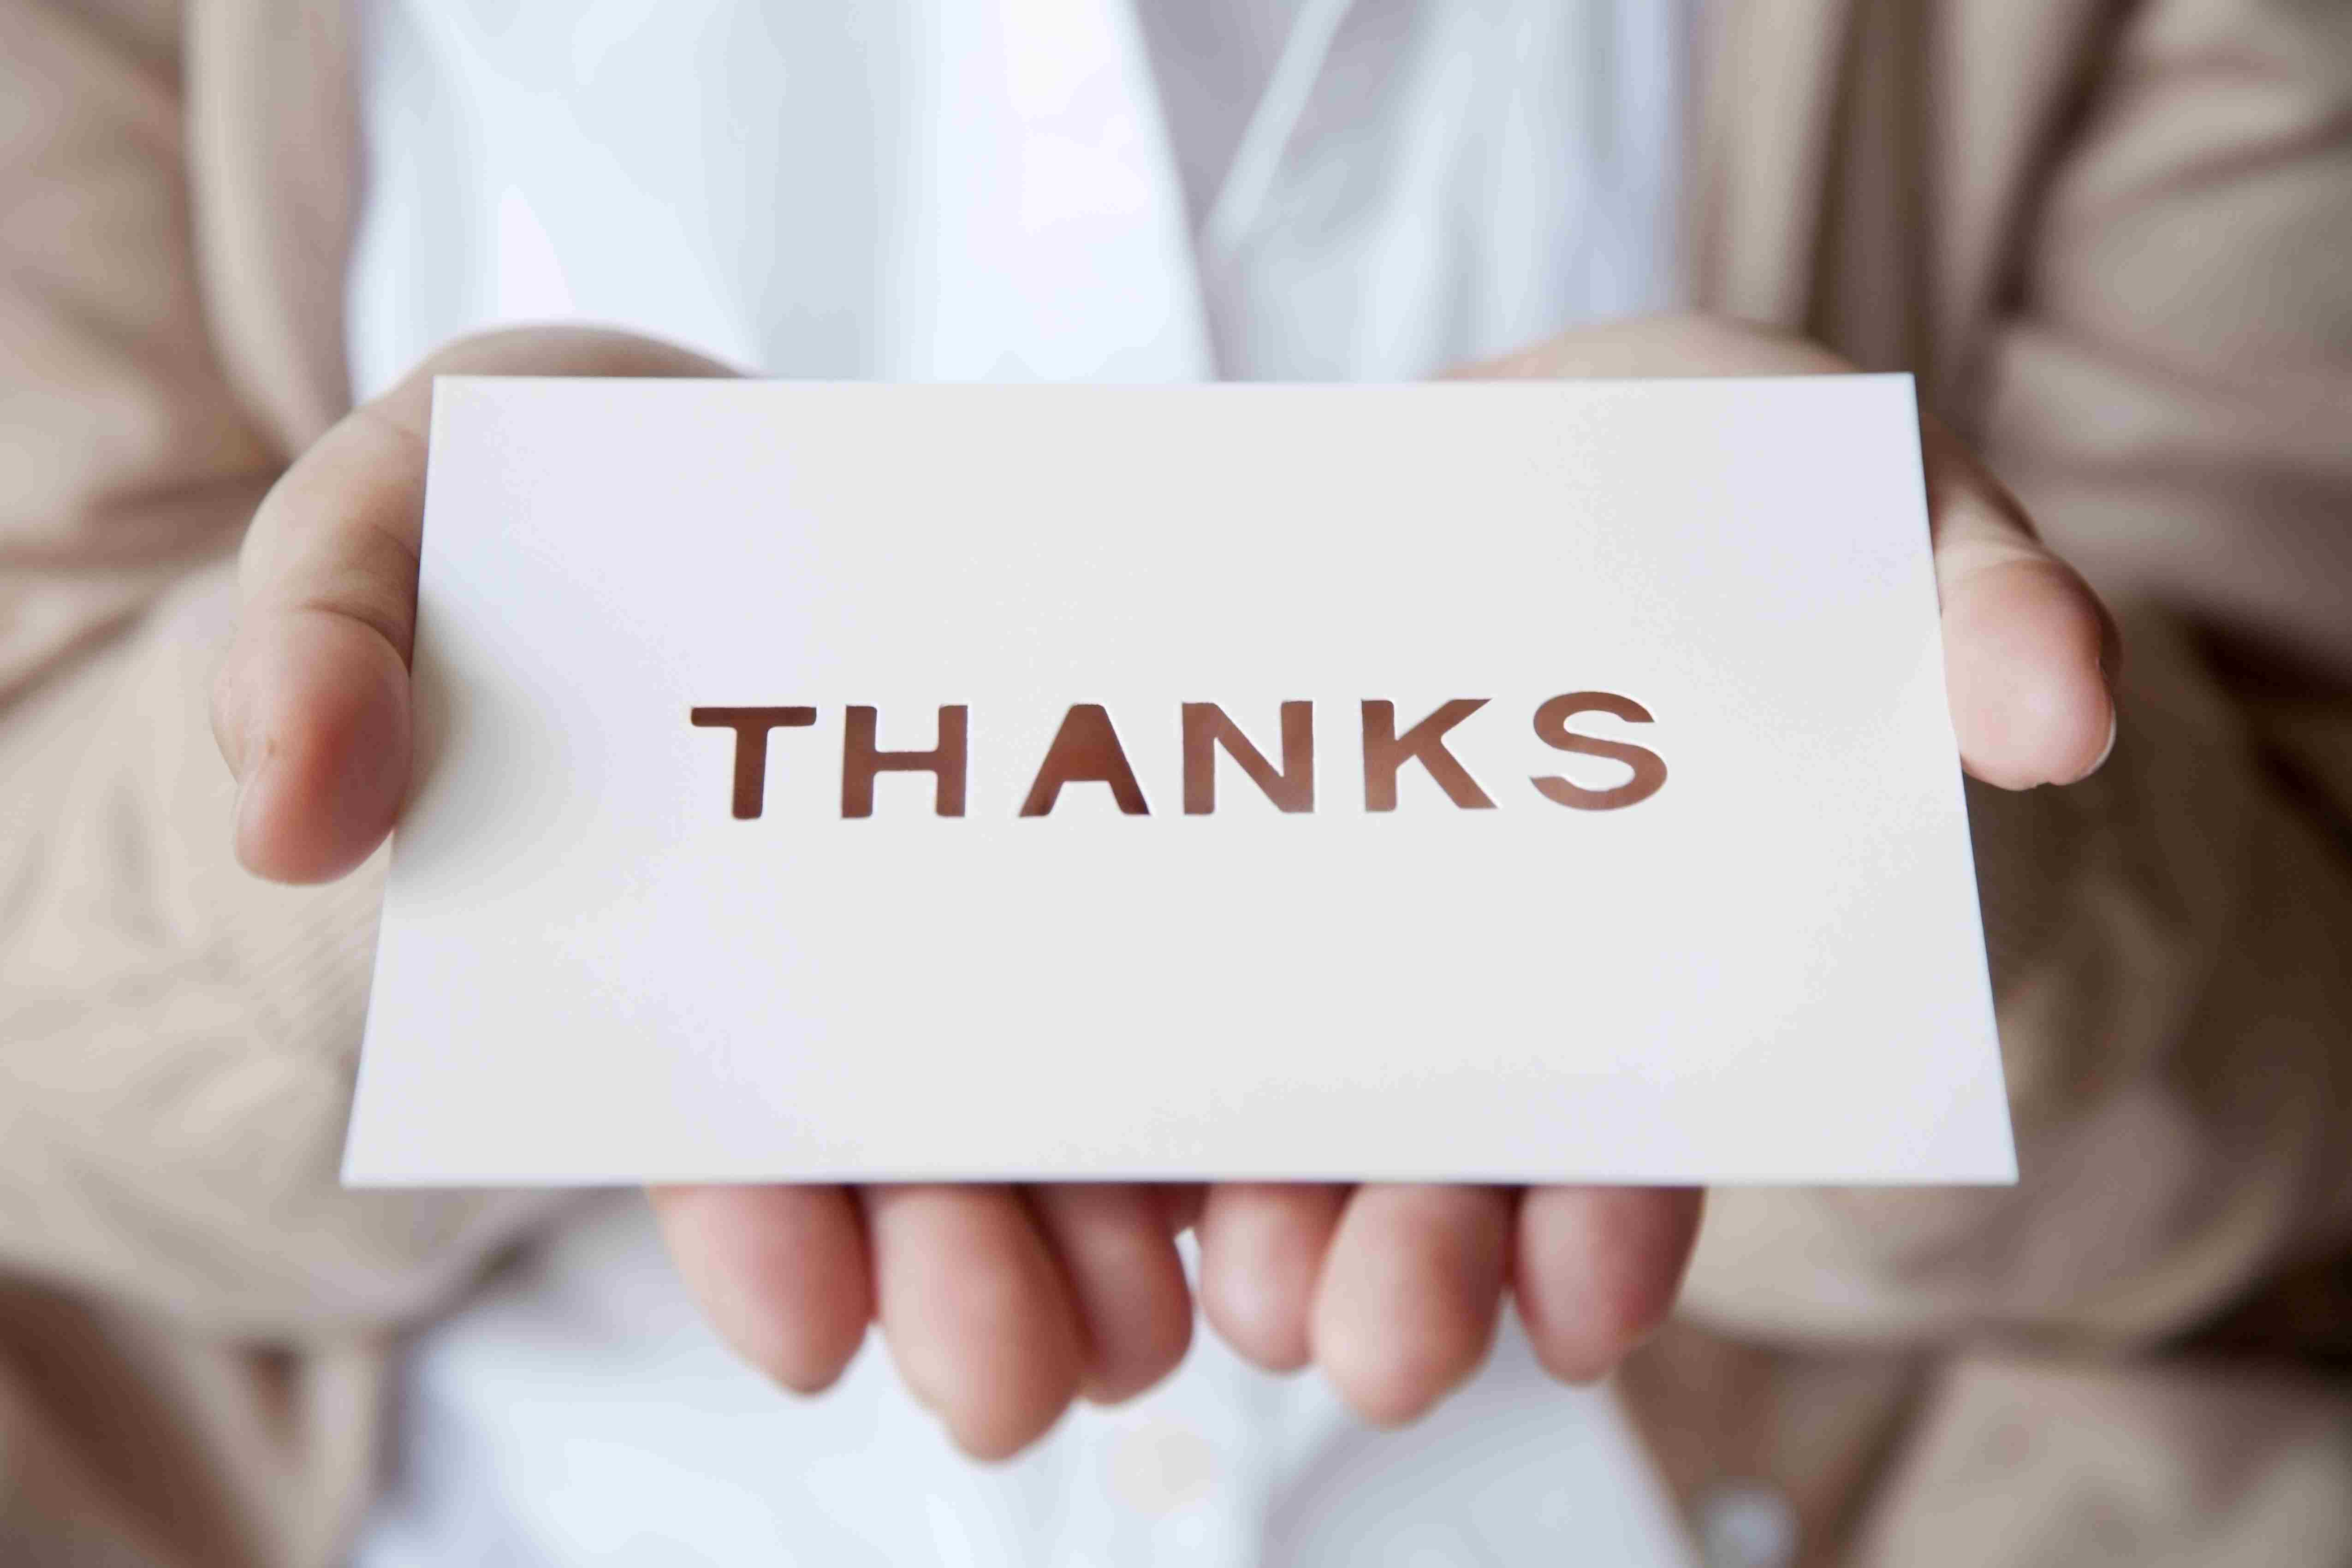 Closeup of hands holding out a thank-you card